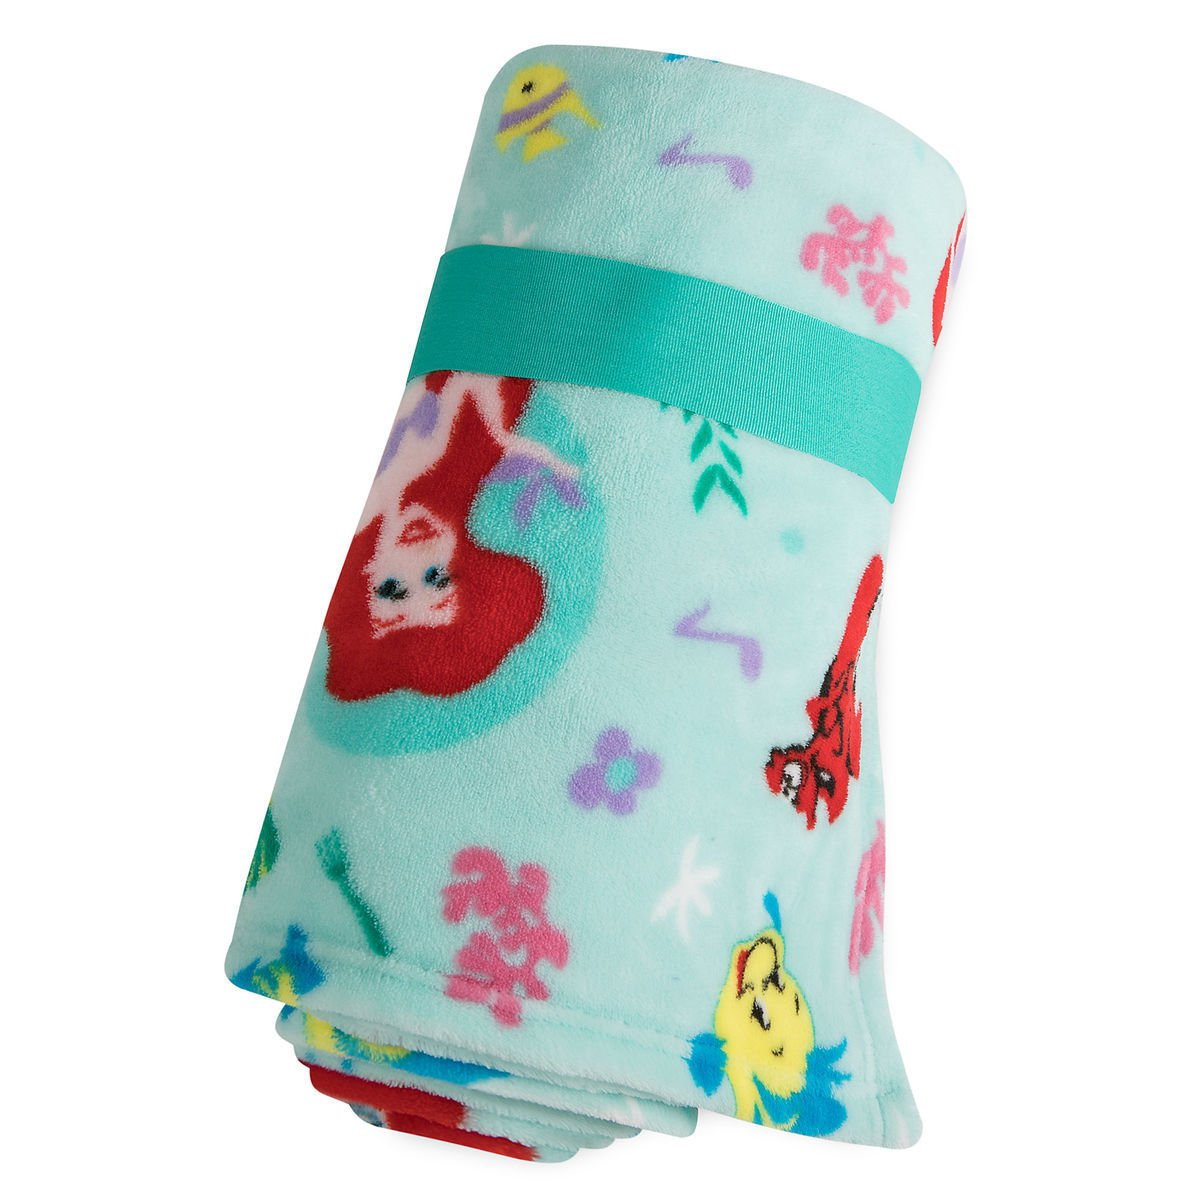 Disney Store Princess Ariel Green Fleece Throw Blanket 2018